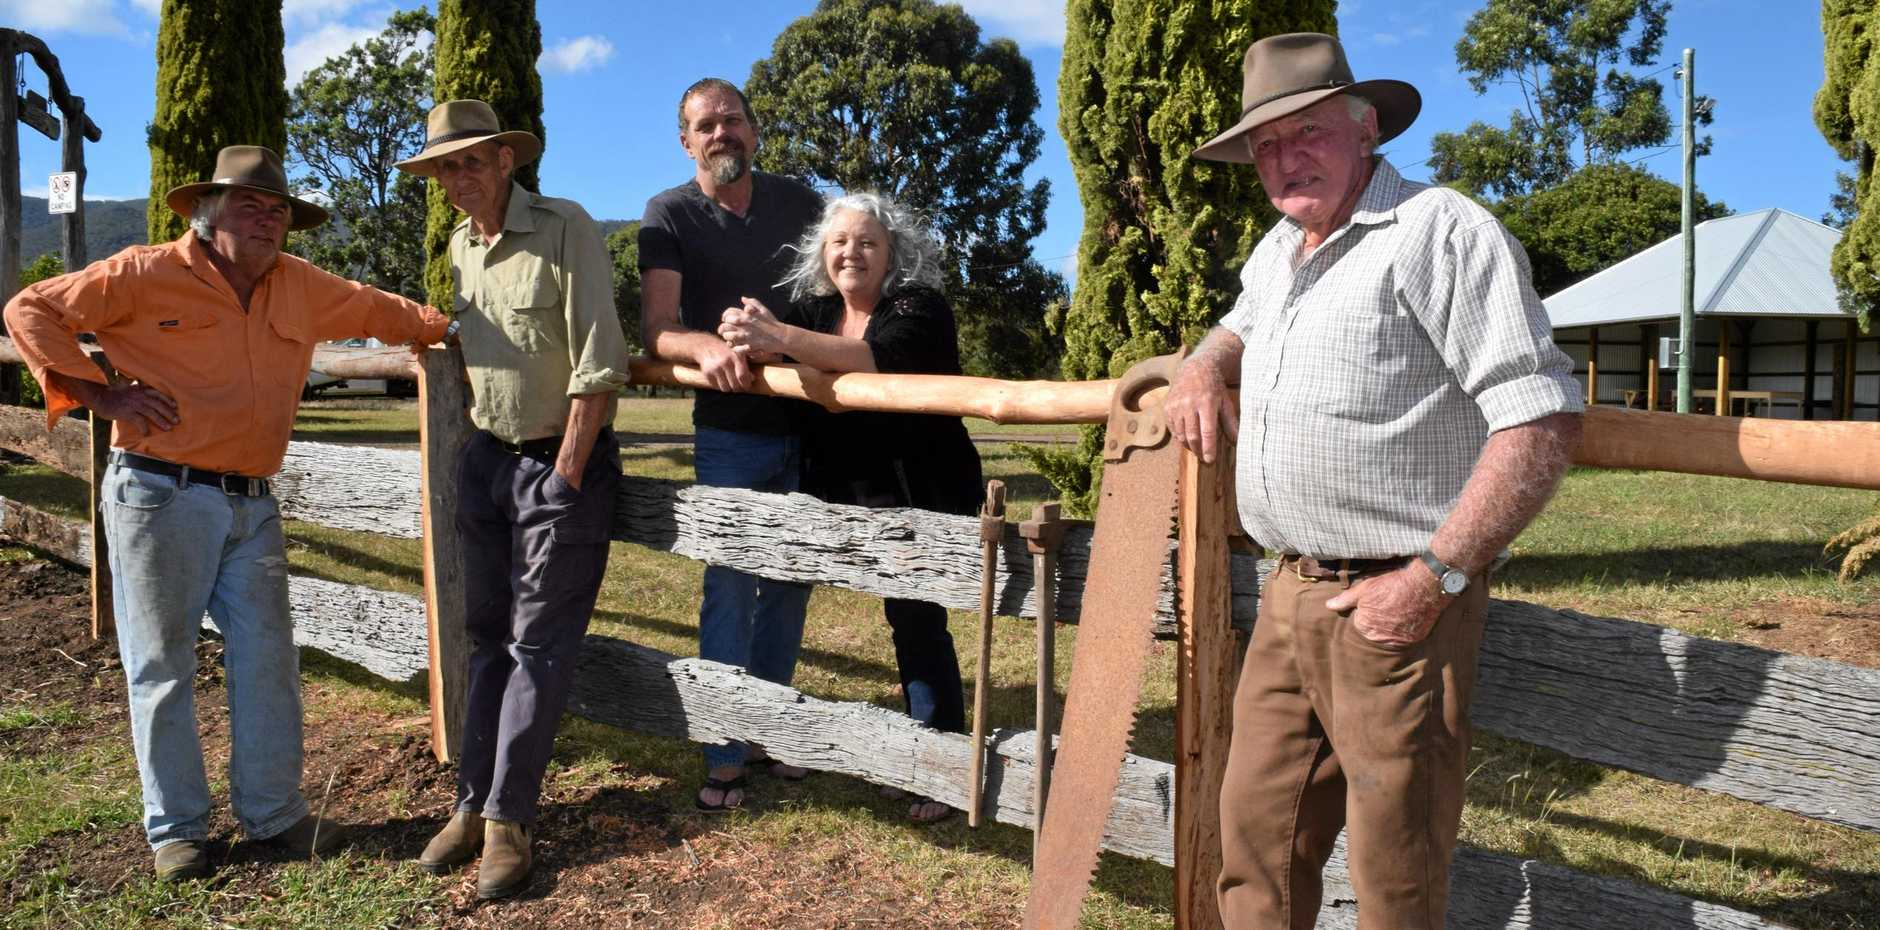 Swanfels locals, Tom Higgins, George Skinner, Brian Galloway, Jenn Greene-Galloway and Milton Rippingale ahead of the Swanfels Shed re-opening.